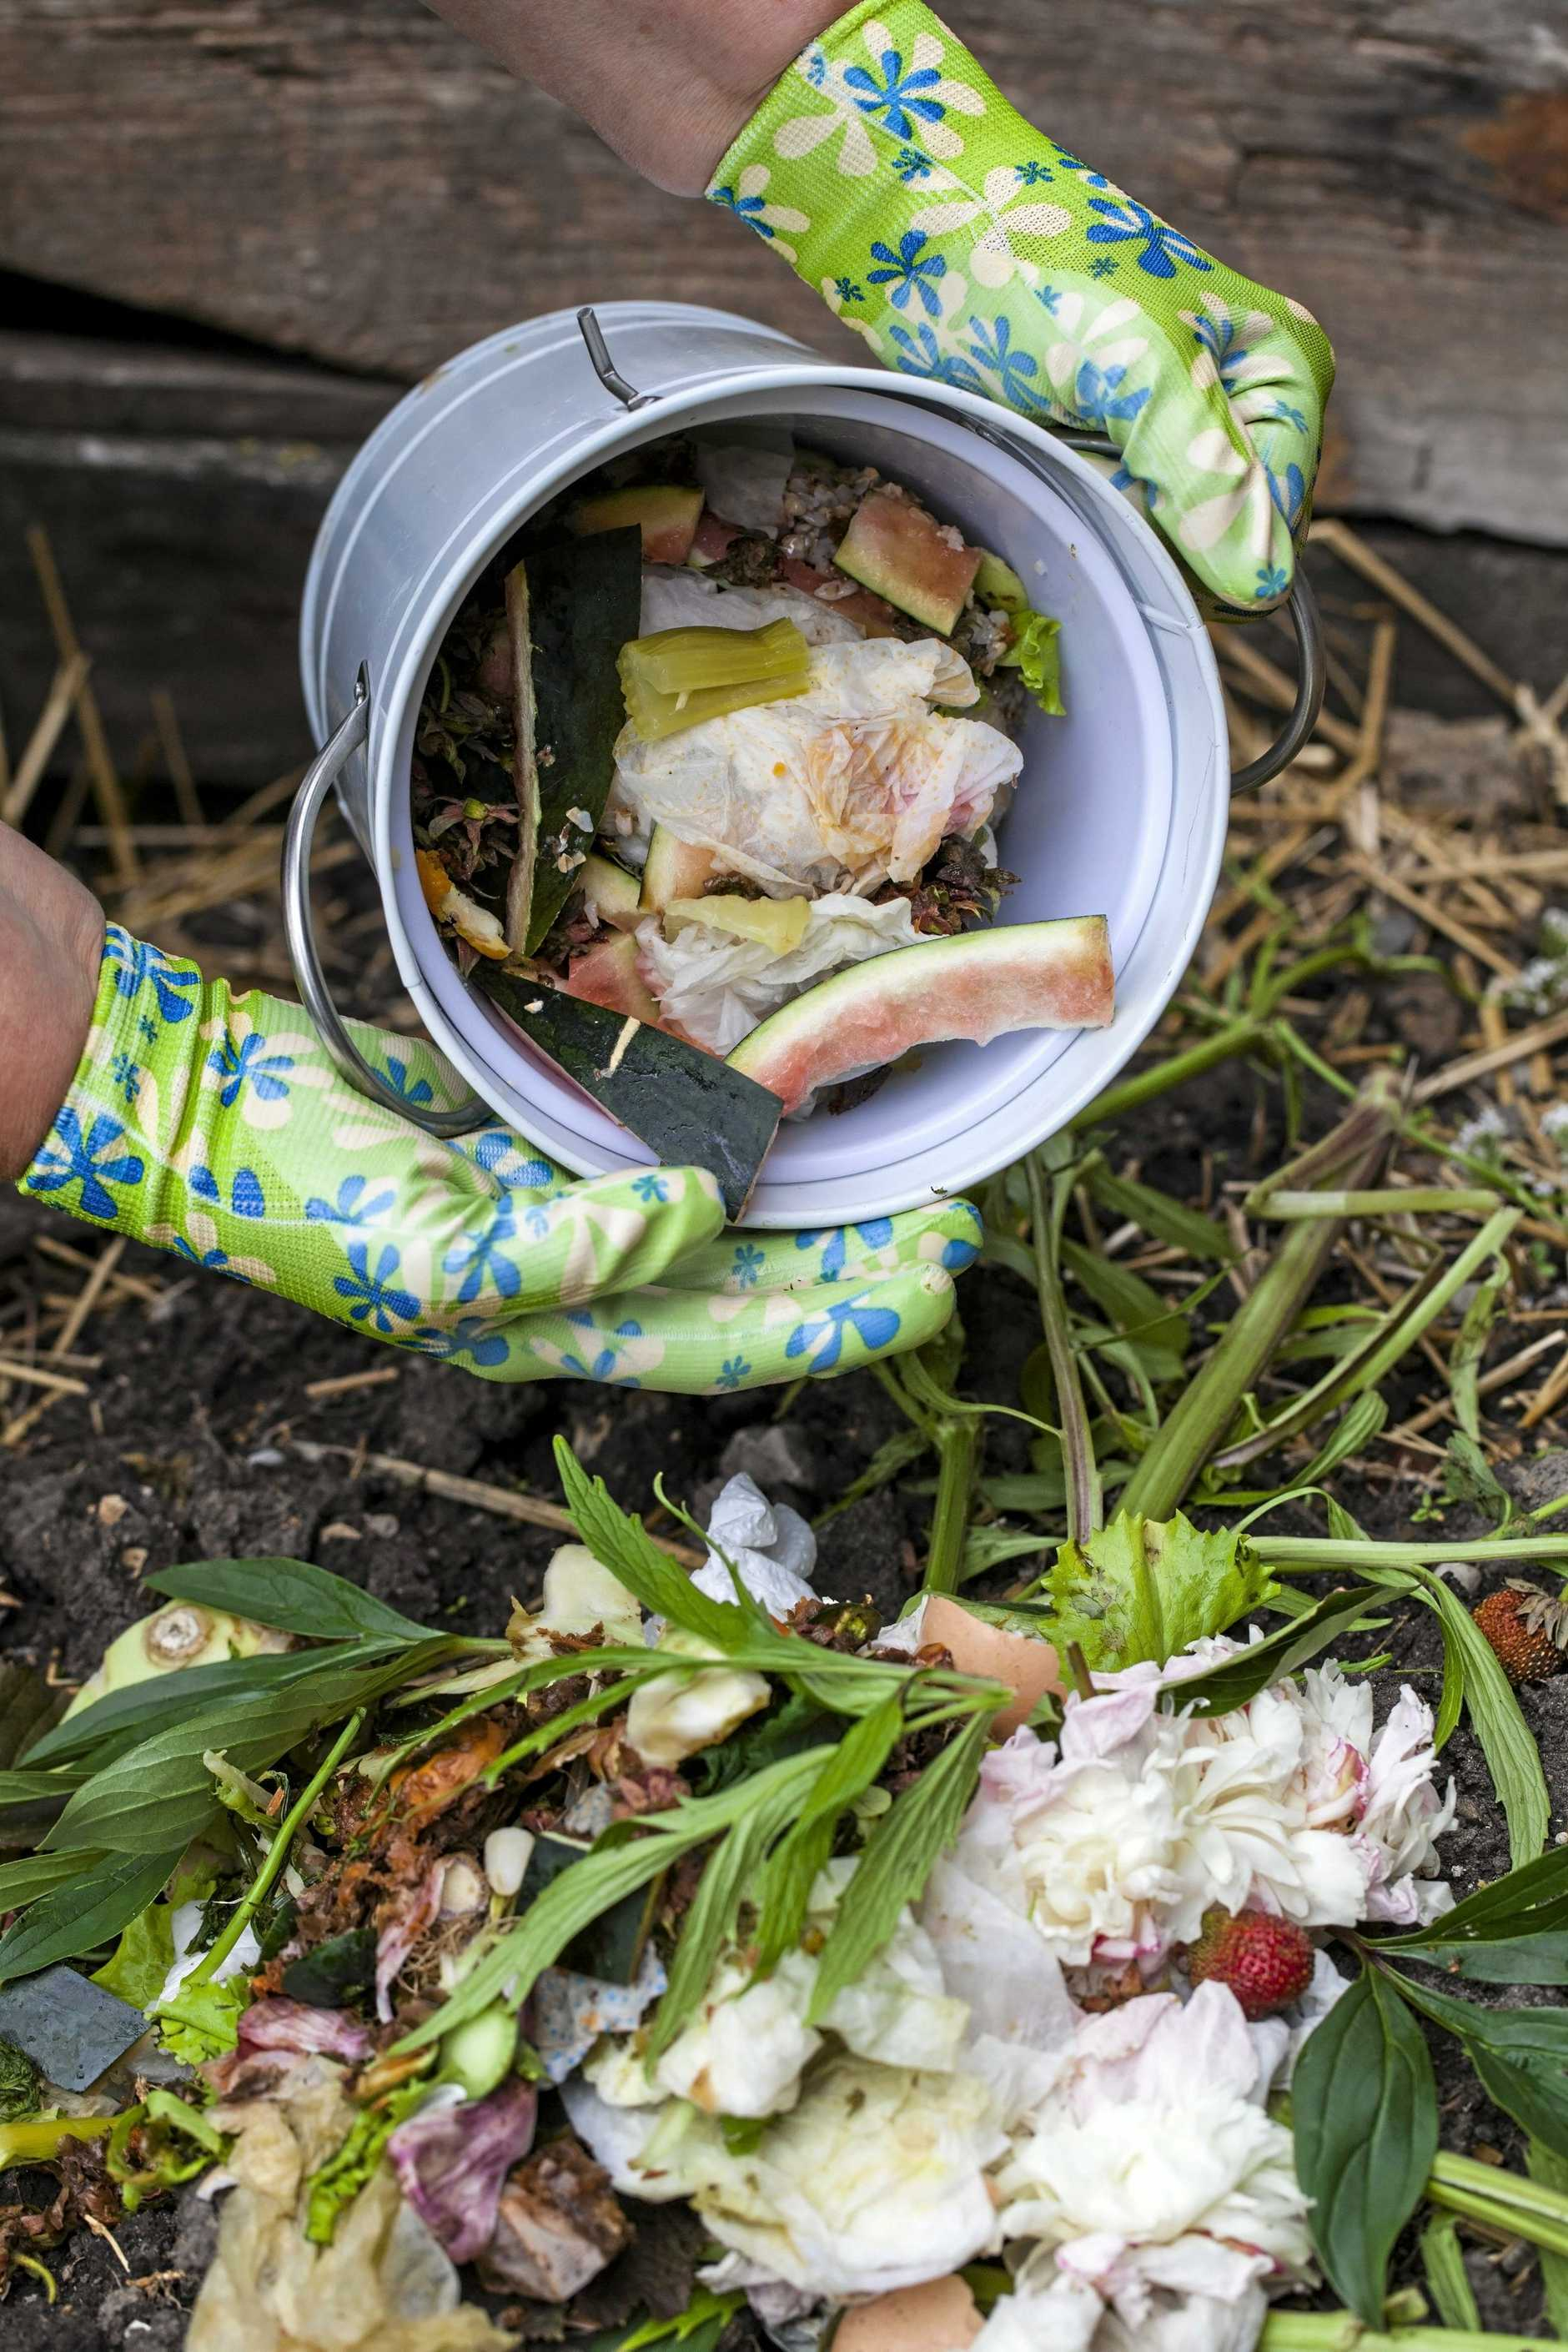 Woman pouring vegetable peels and organic waste to the compost bin.